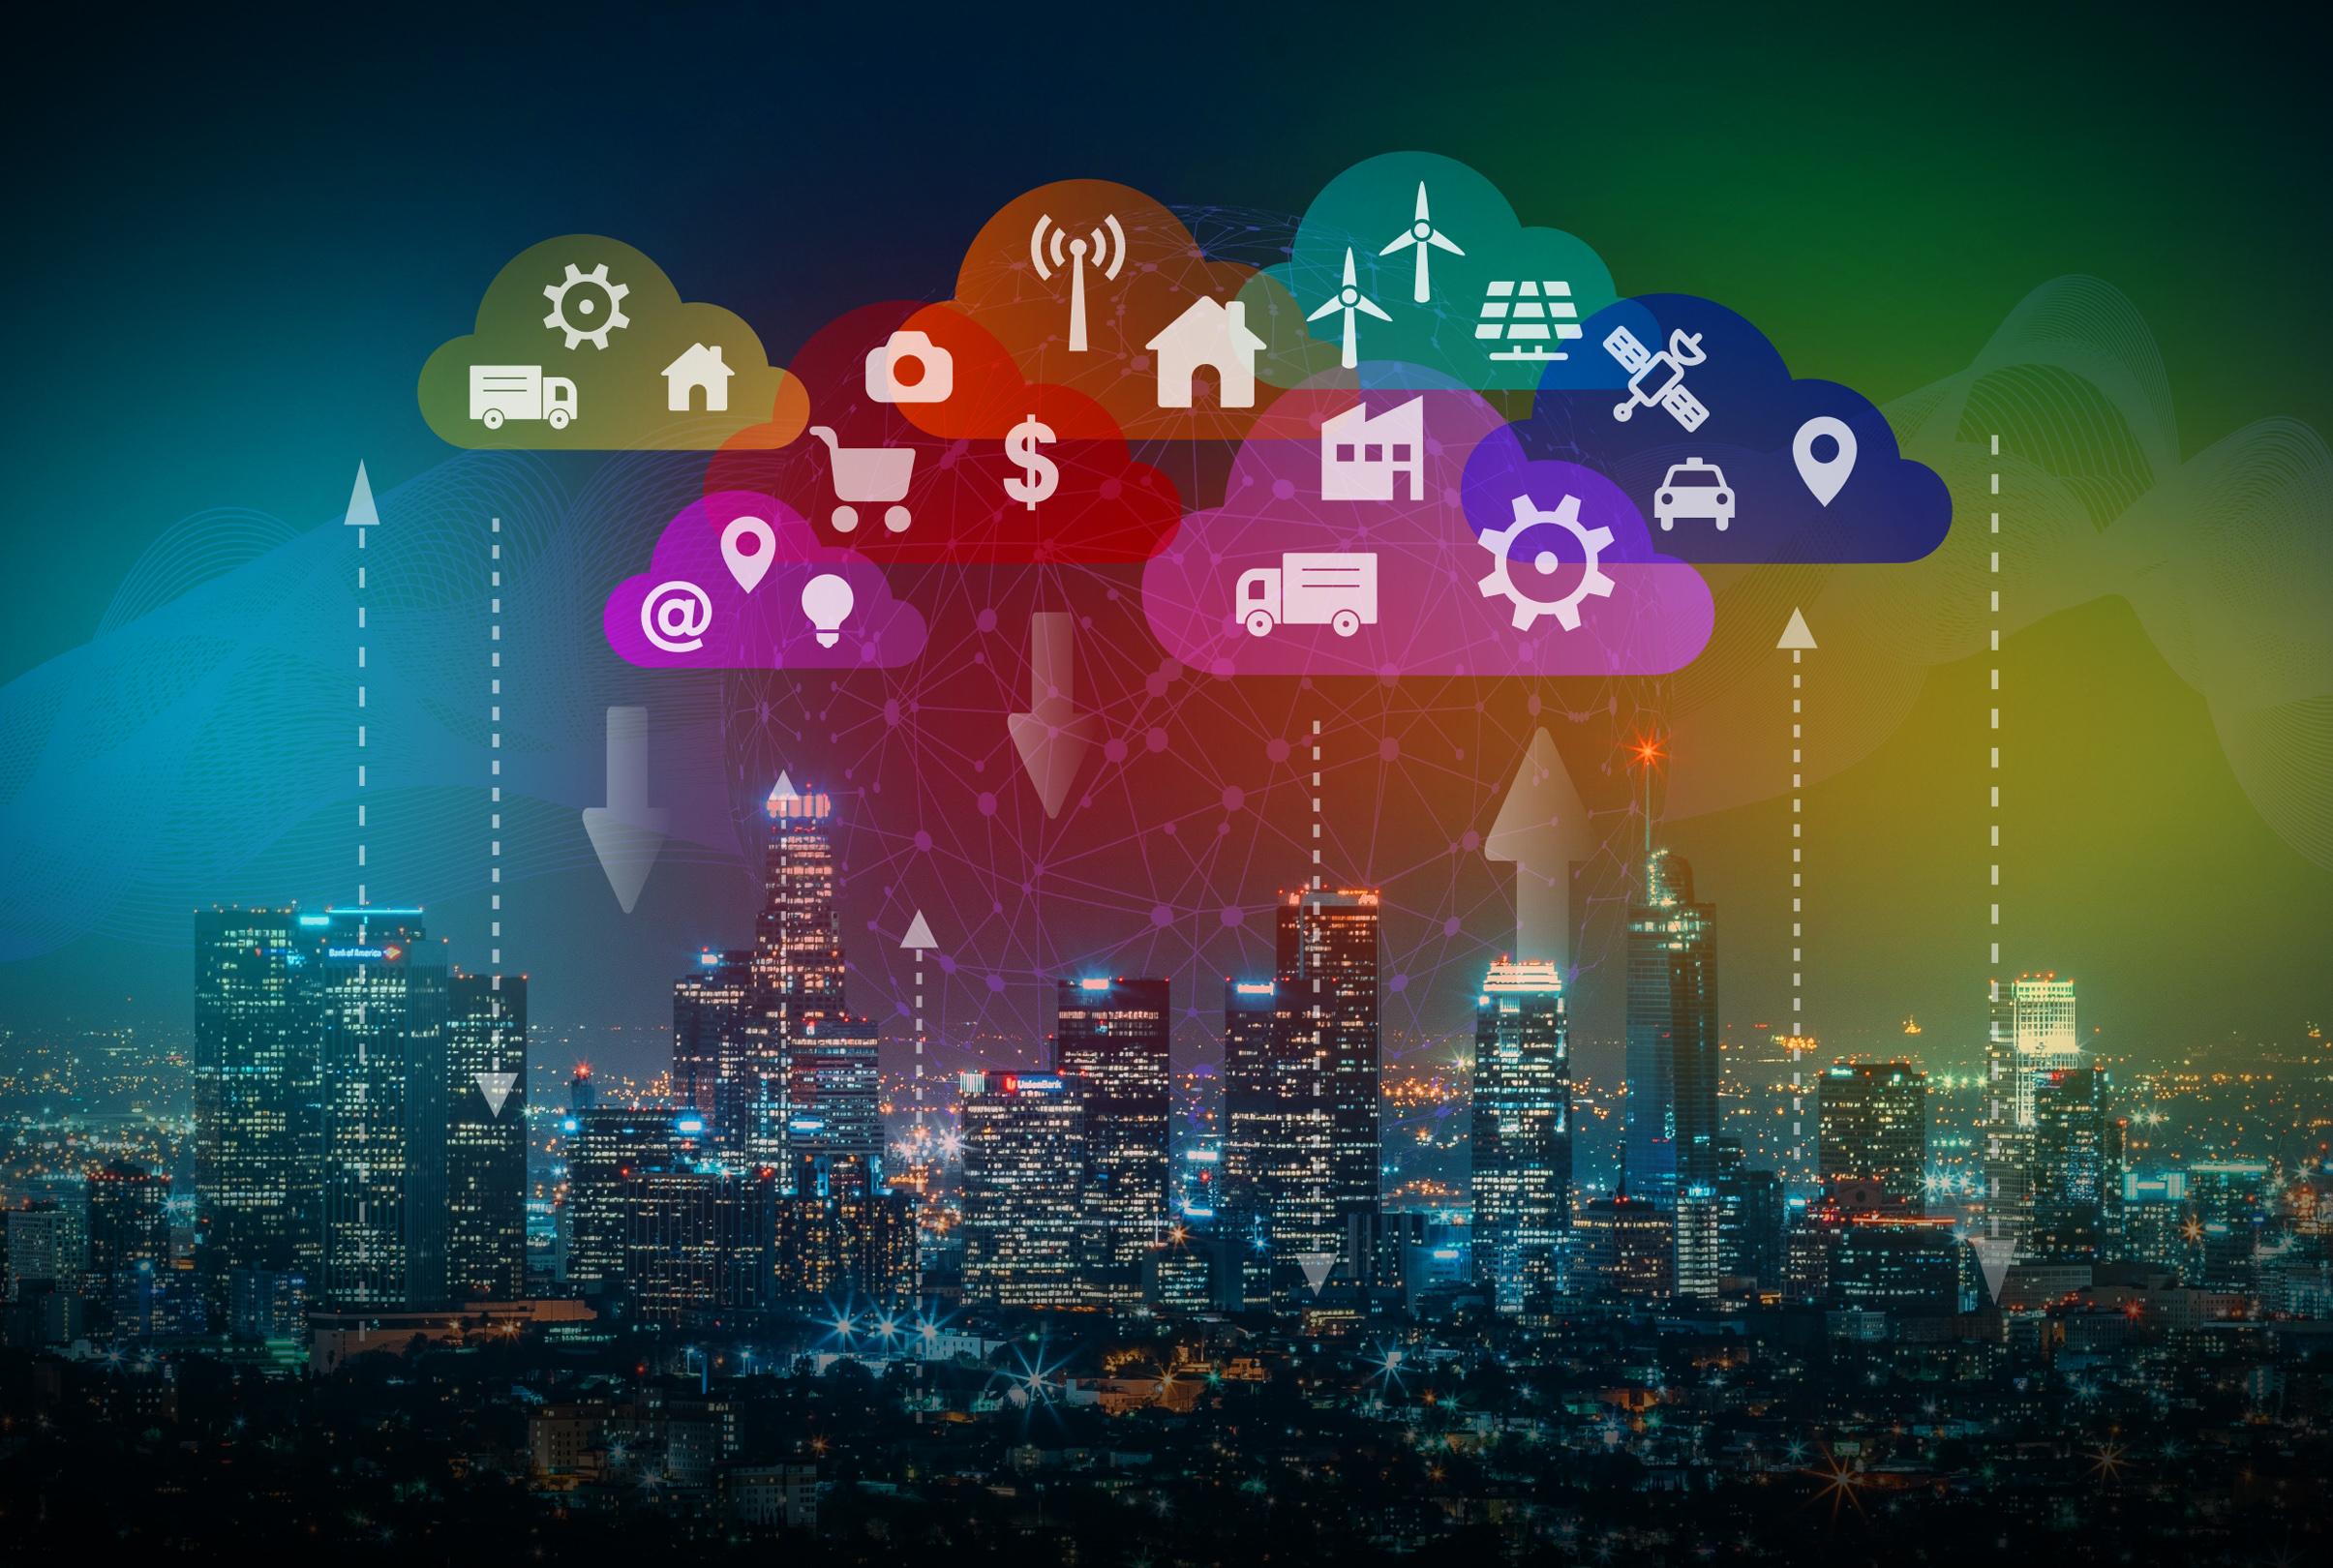 Easy to use GSM and GPS building blocks for mobile IoT devices